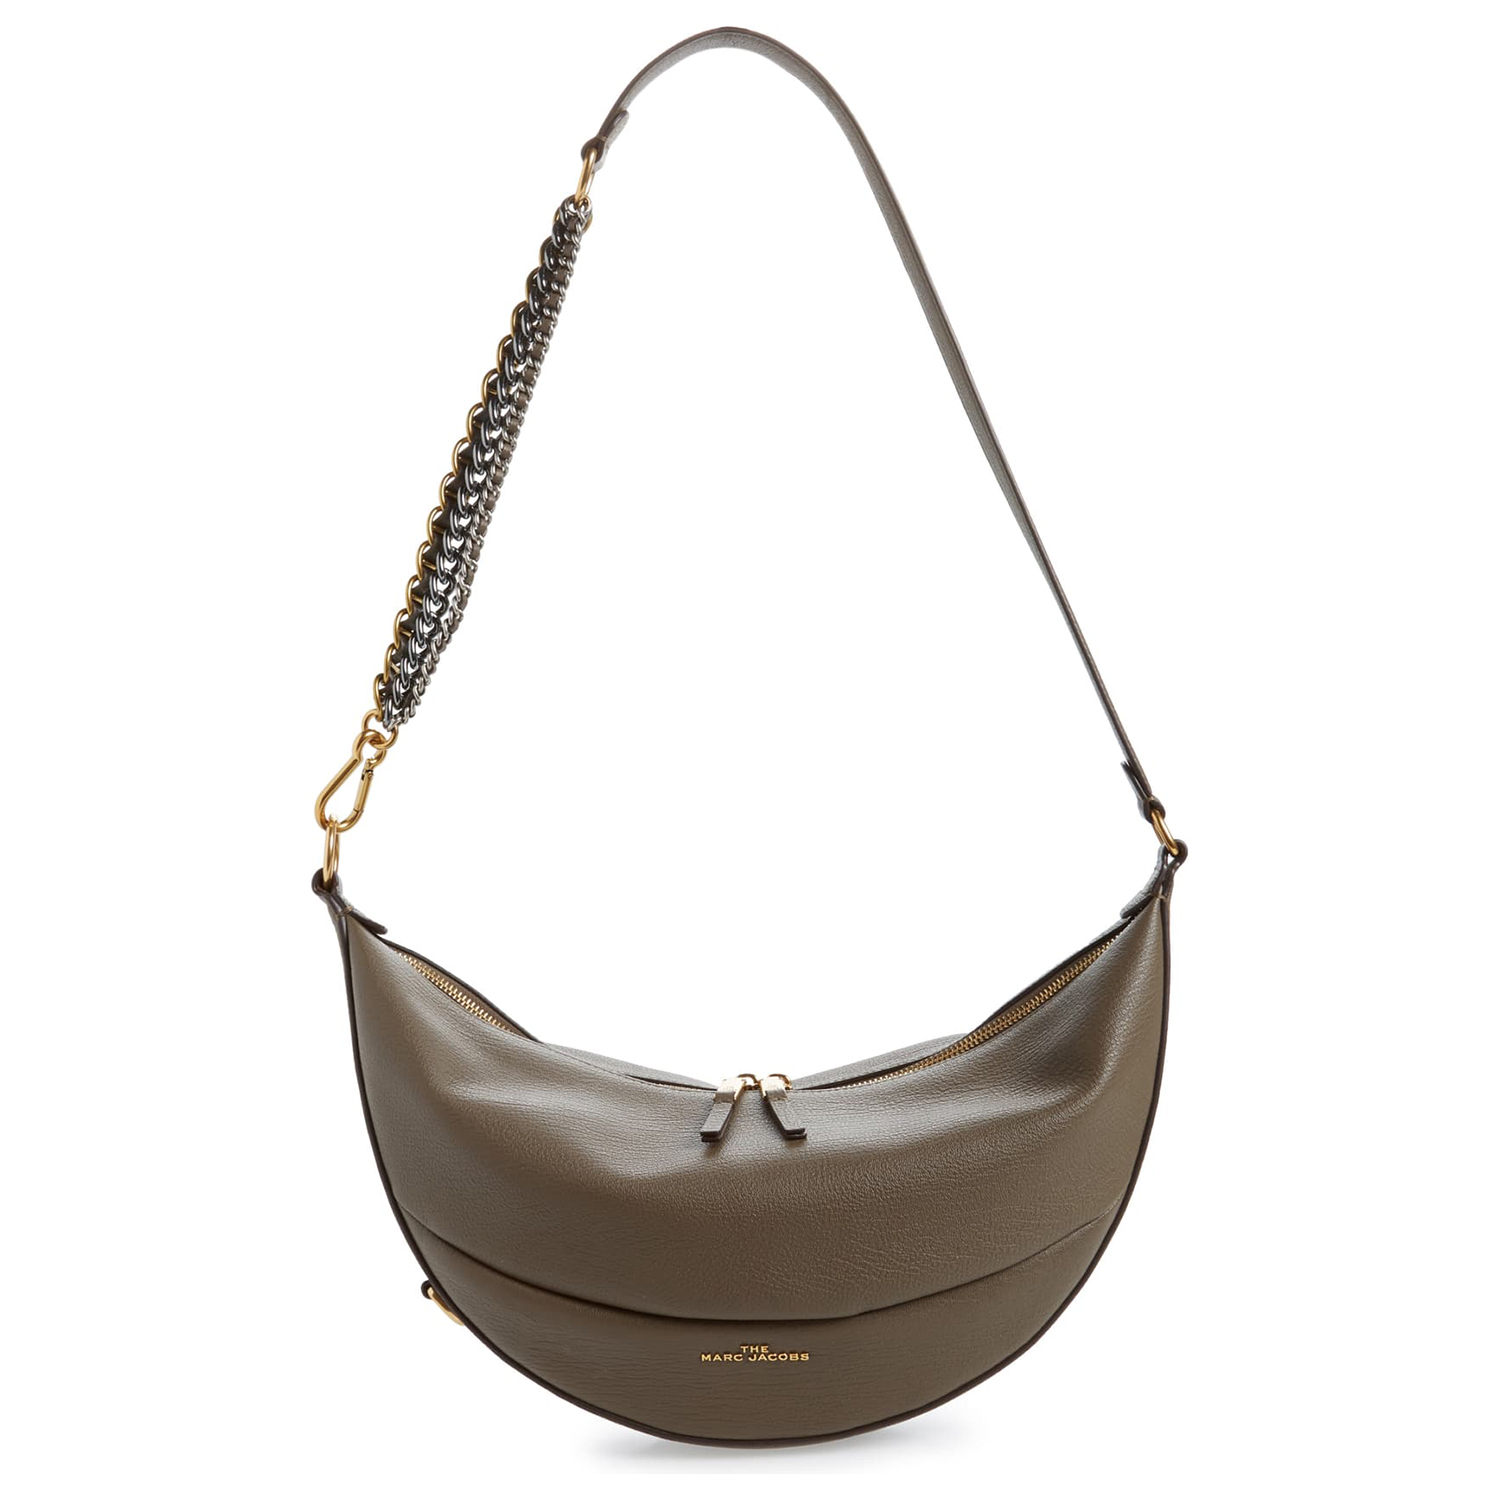 The Marc Jacobs The Eclipse Leather Shoulder Bag